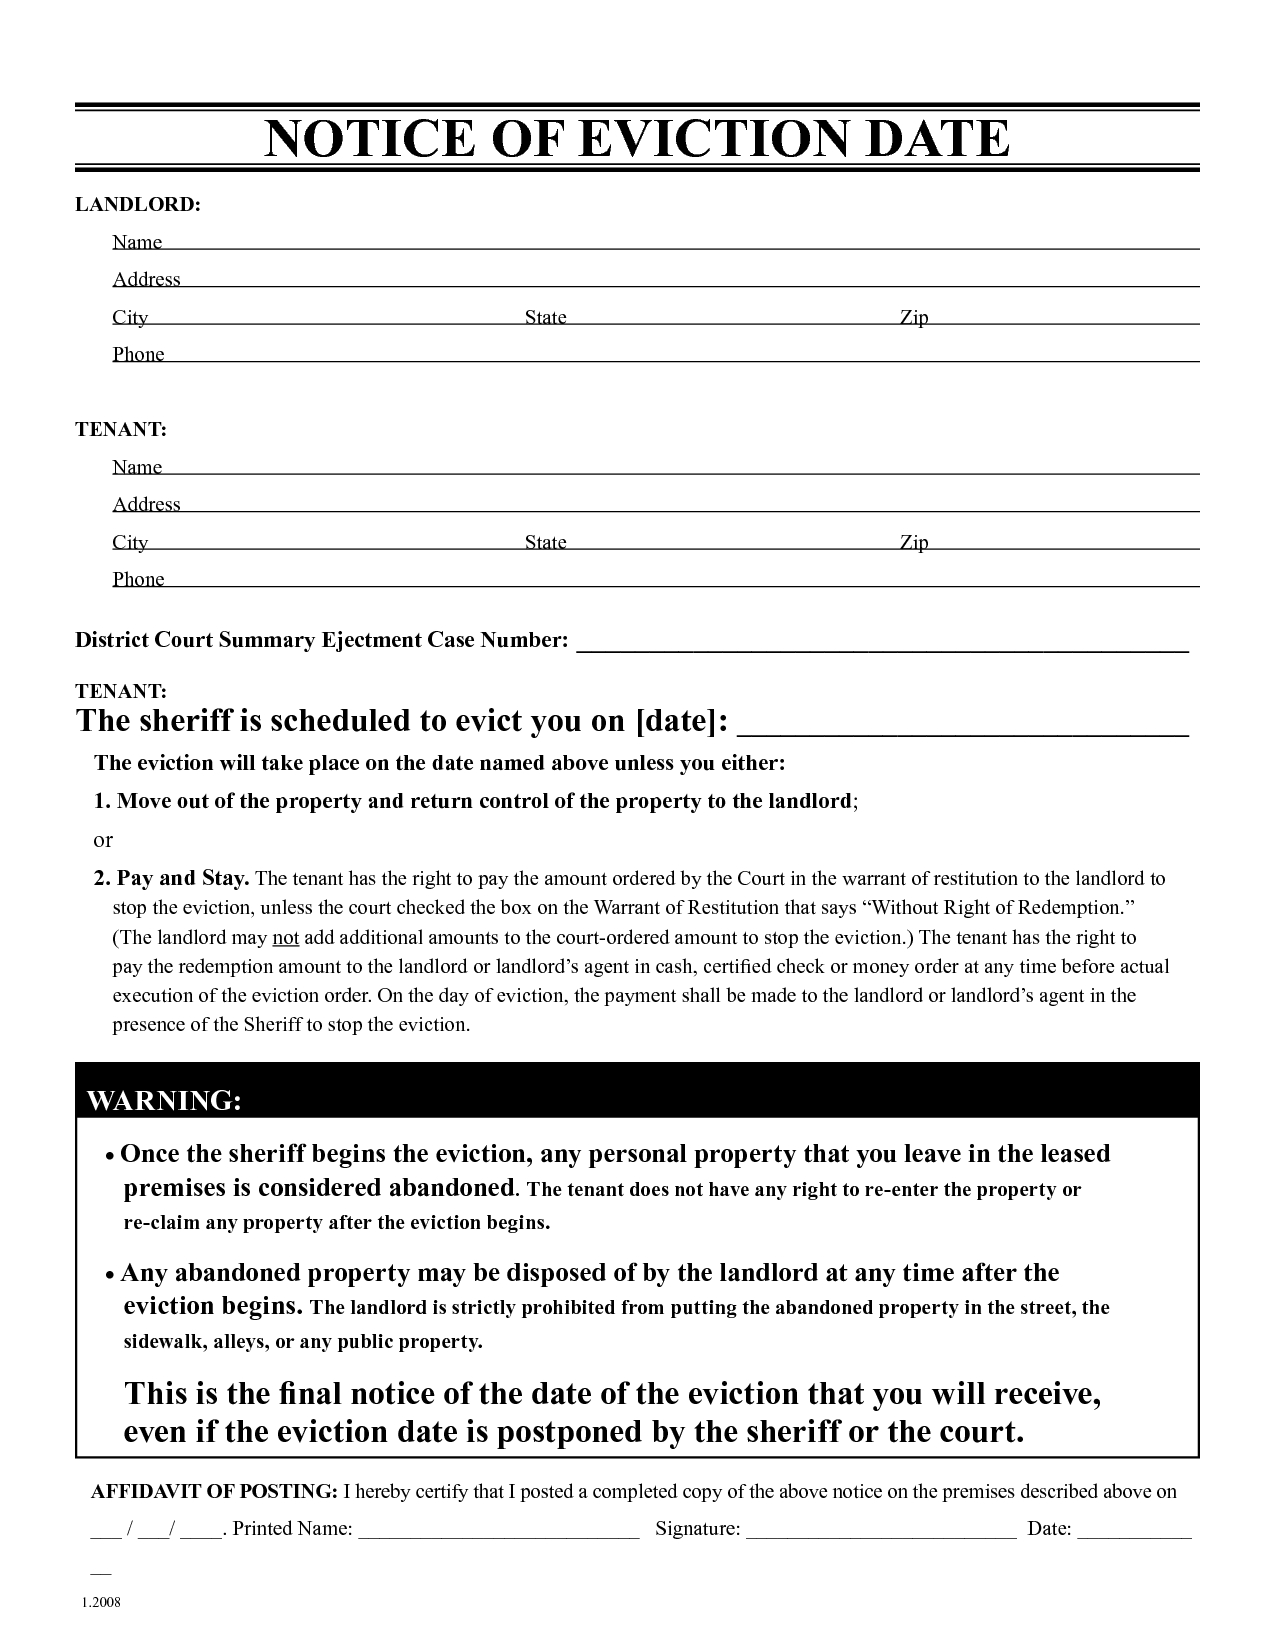 Free Eviction Notice Template | Printable Eviction Notice | Leaave - Free Printable Blank Eviction Notice